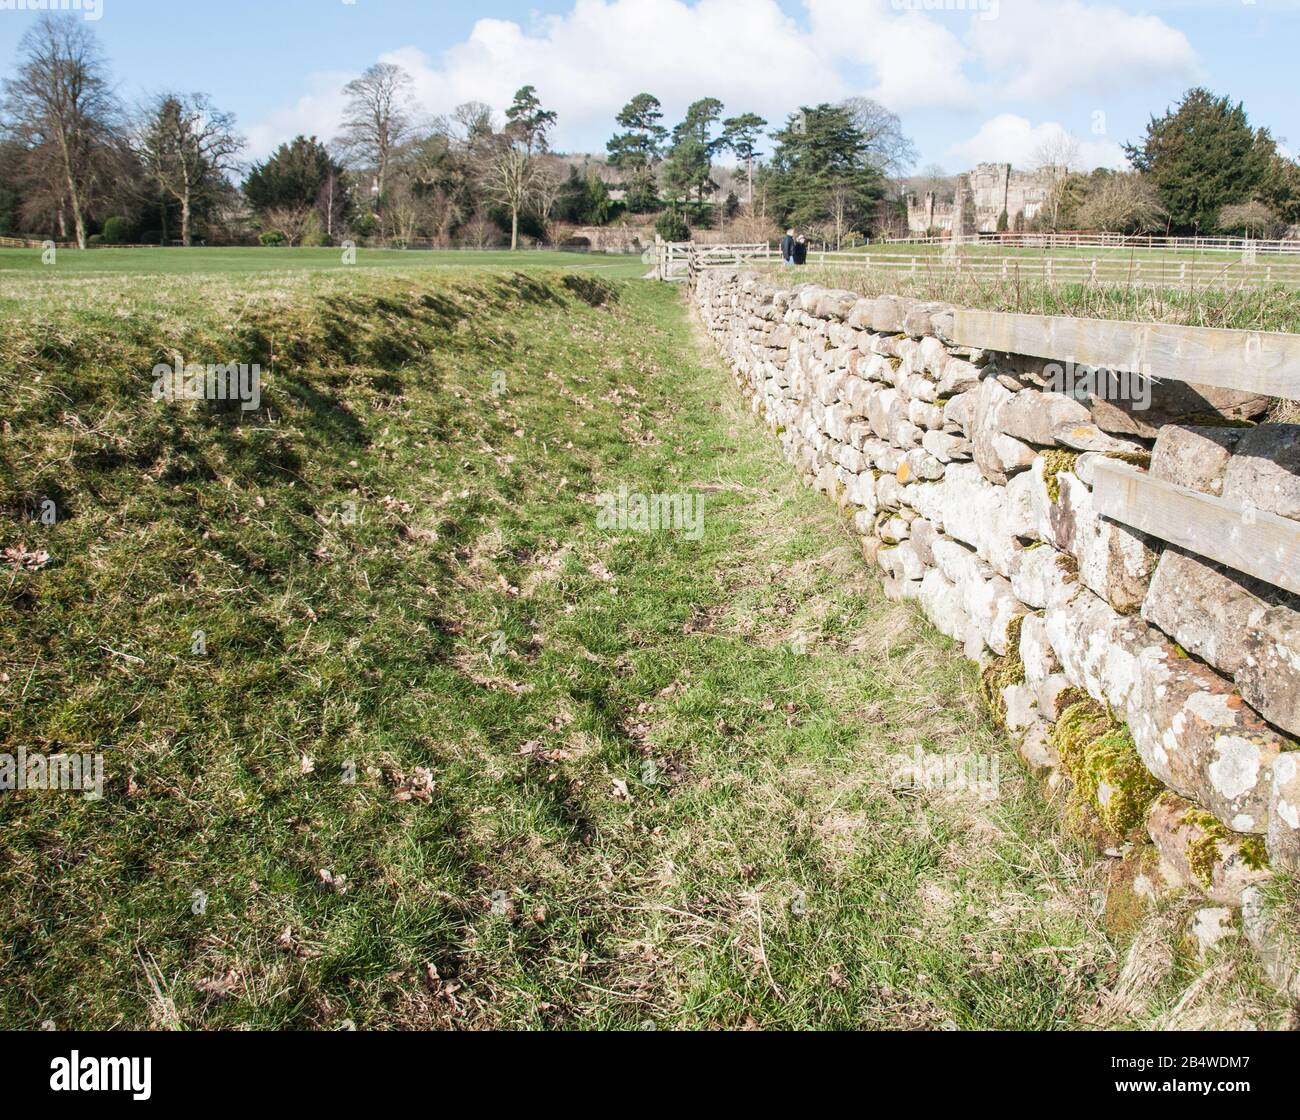 Around the UK - A day out at Bolton Abbey - Ha-Ha Wall Stock Photo